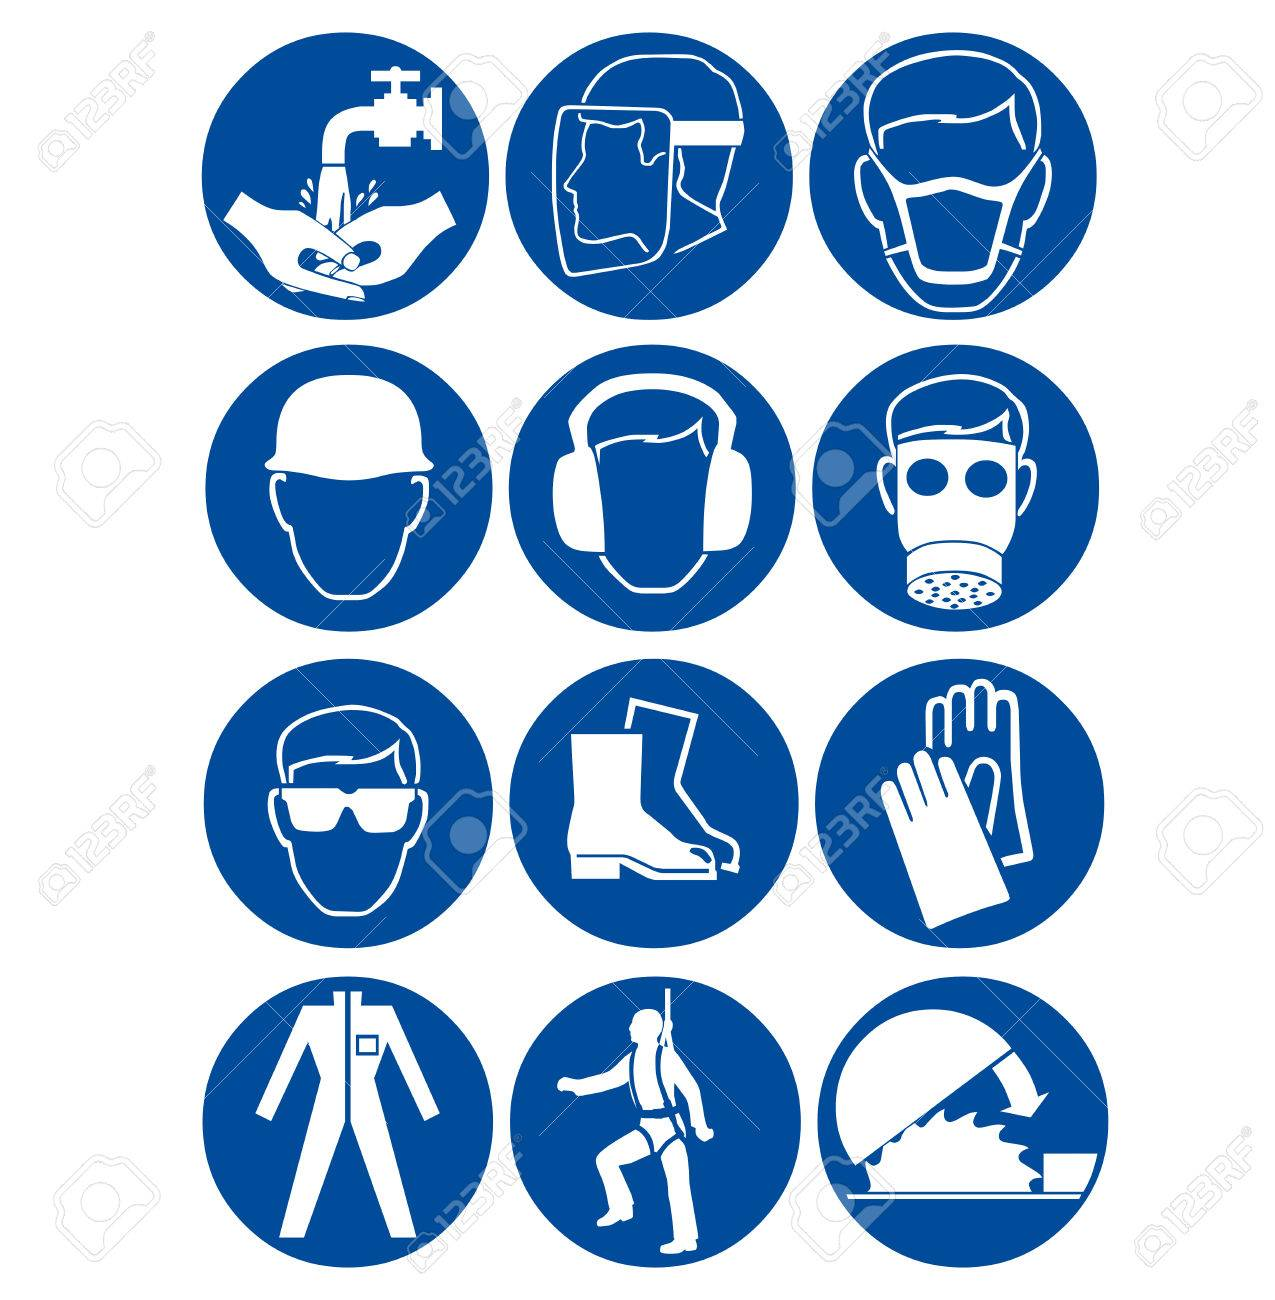 Personal Protective Equipment Icon Stock Photos Royalty Free